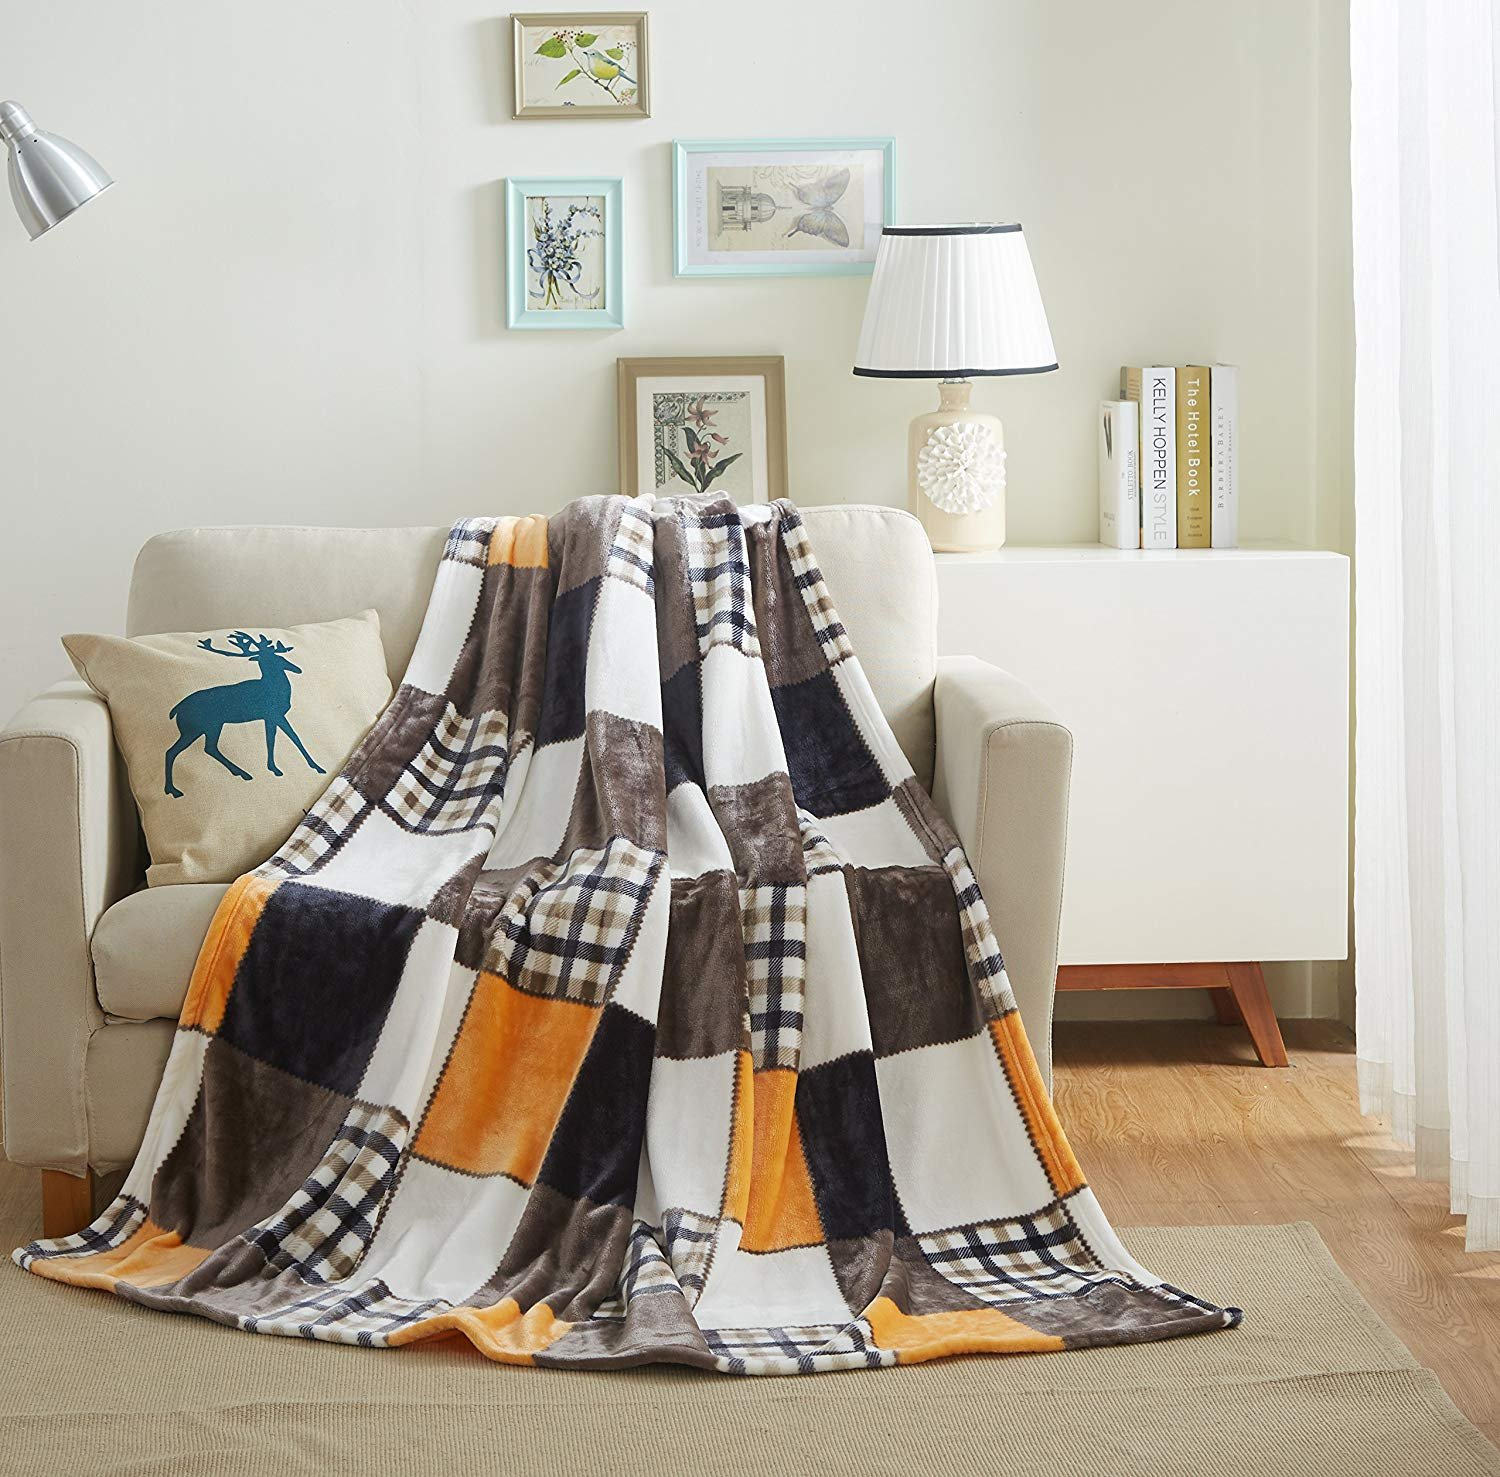 Tache 50x60 Fall Farmhouse Super Soft Warm Lightweight Plaid Fleece Patchwork Decorative Throw Blanket for Couch, Sofa, Lap - Colorful Orange, Yellow, Brown, White